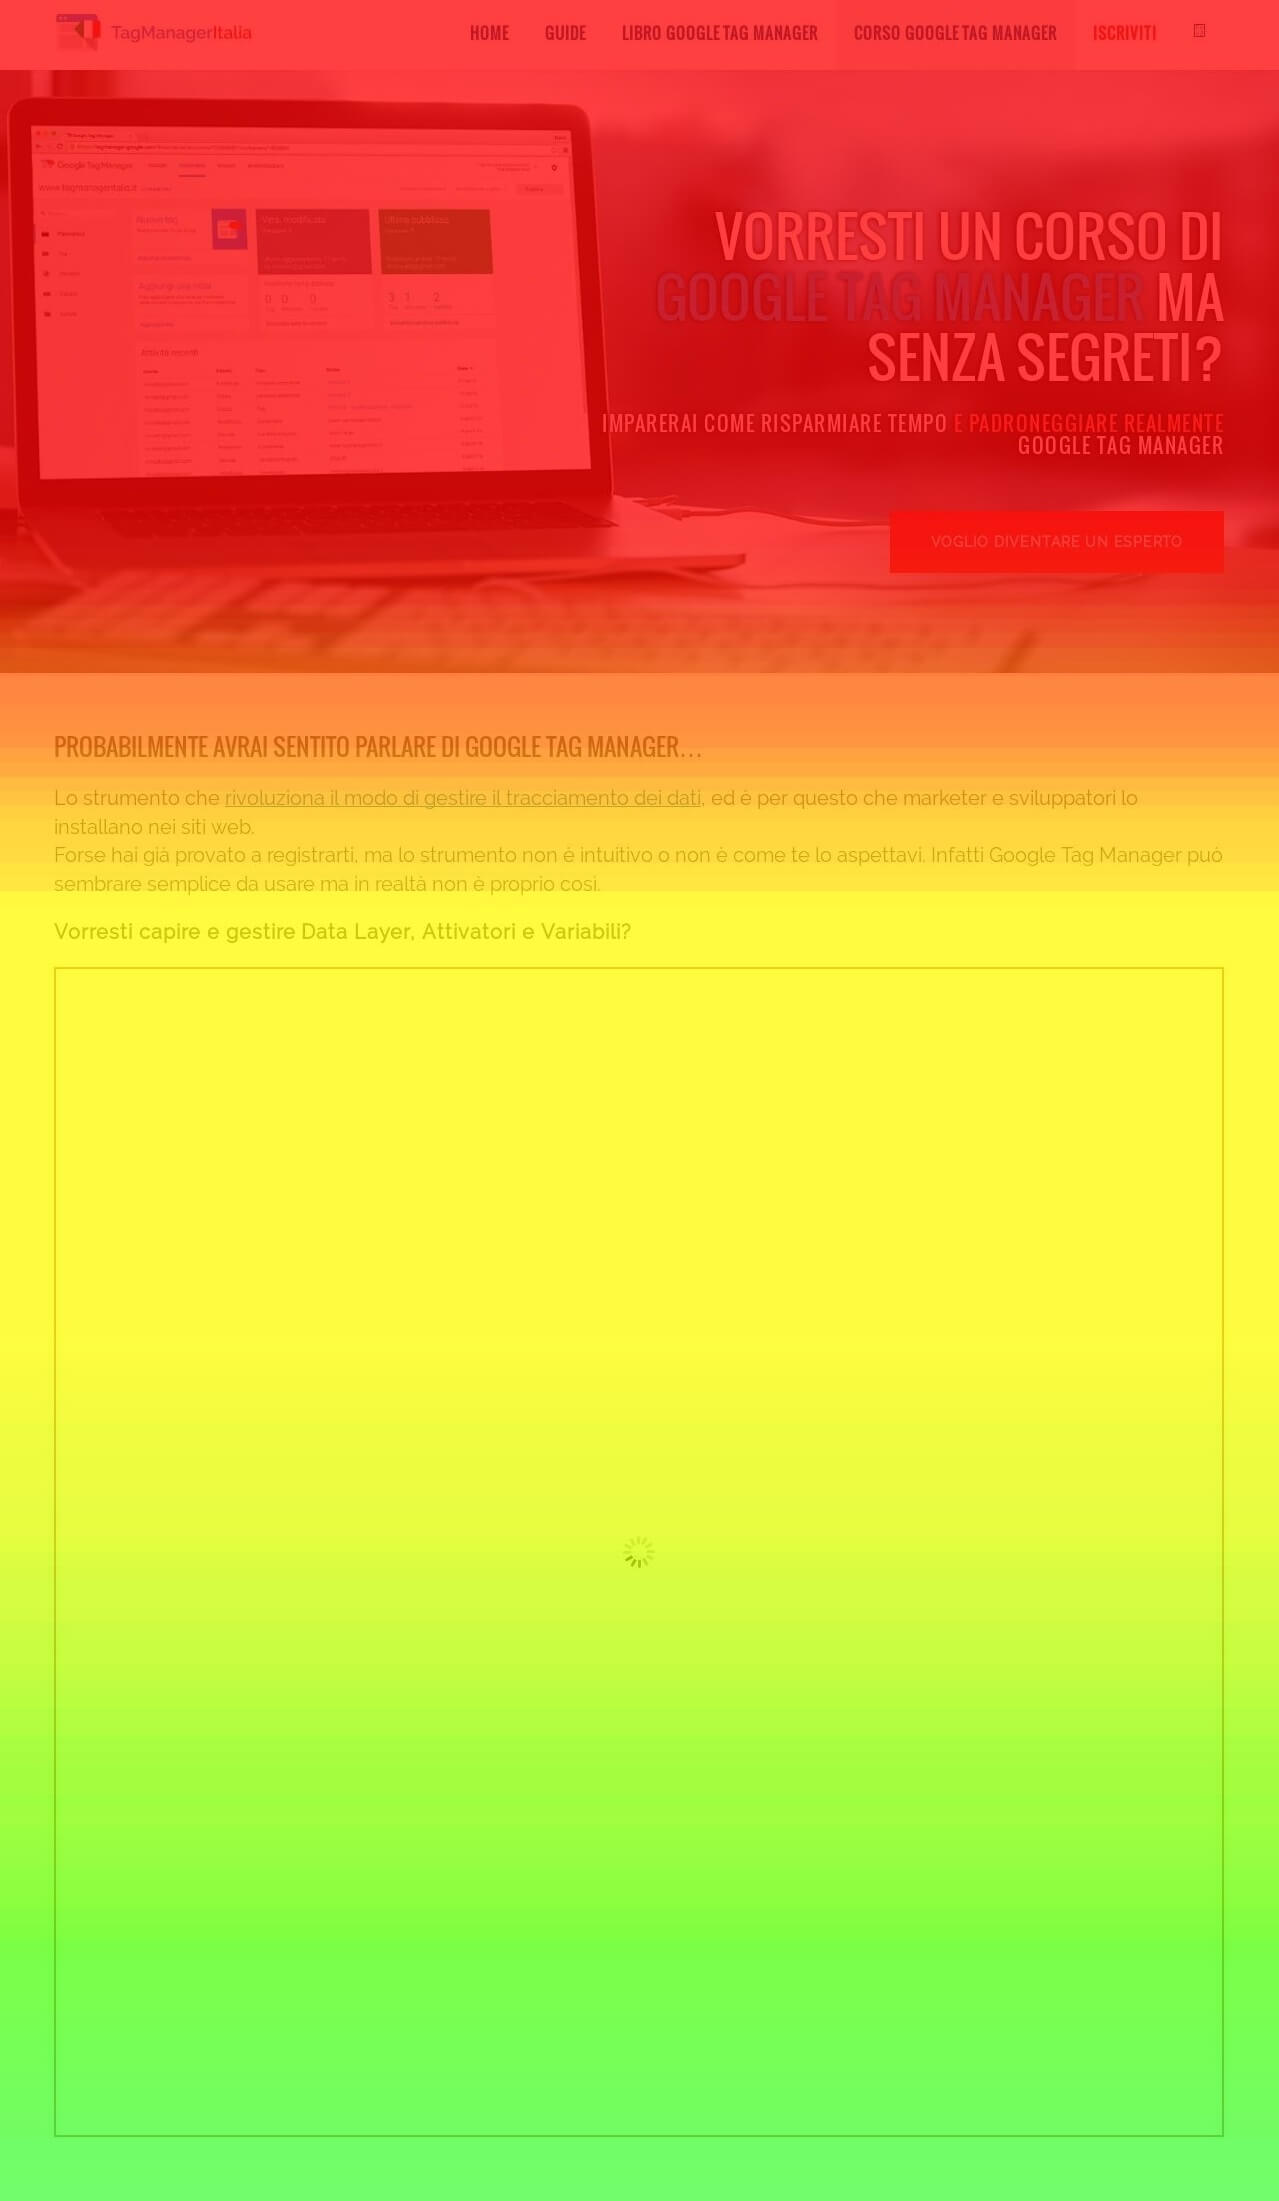 heatmap-scroll-map-tmi